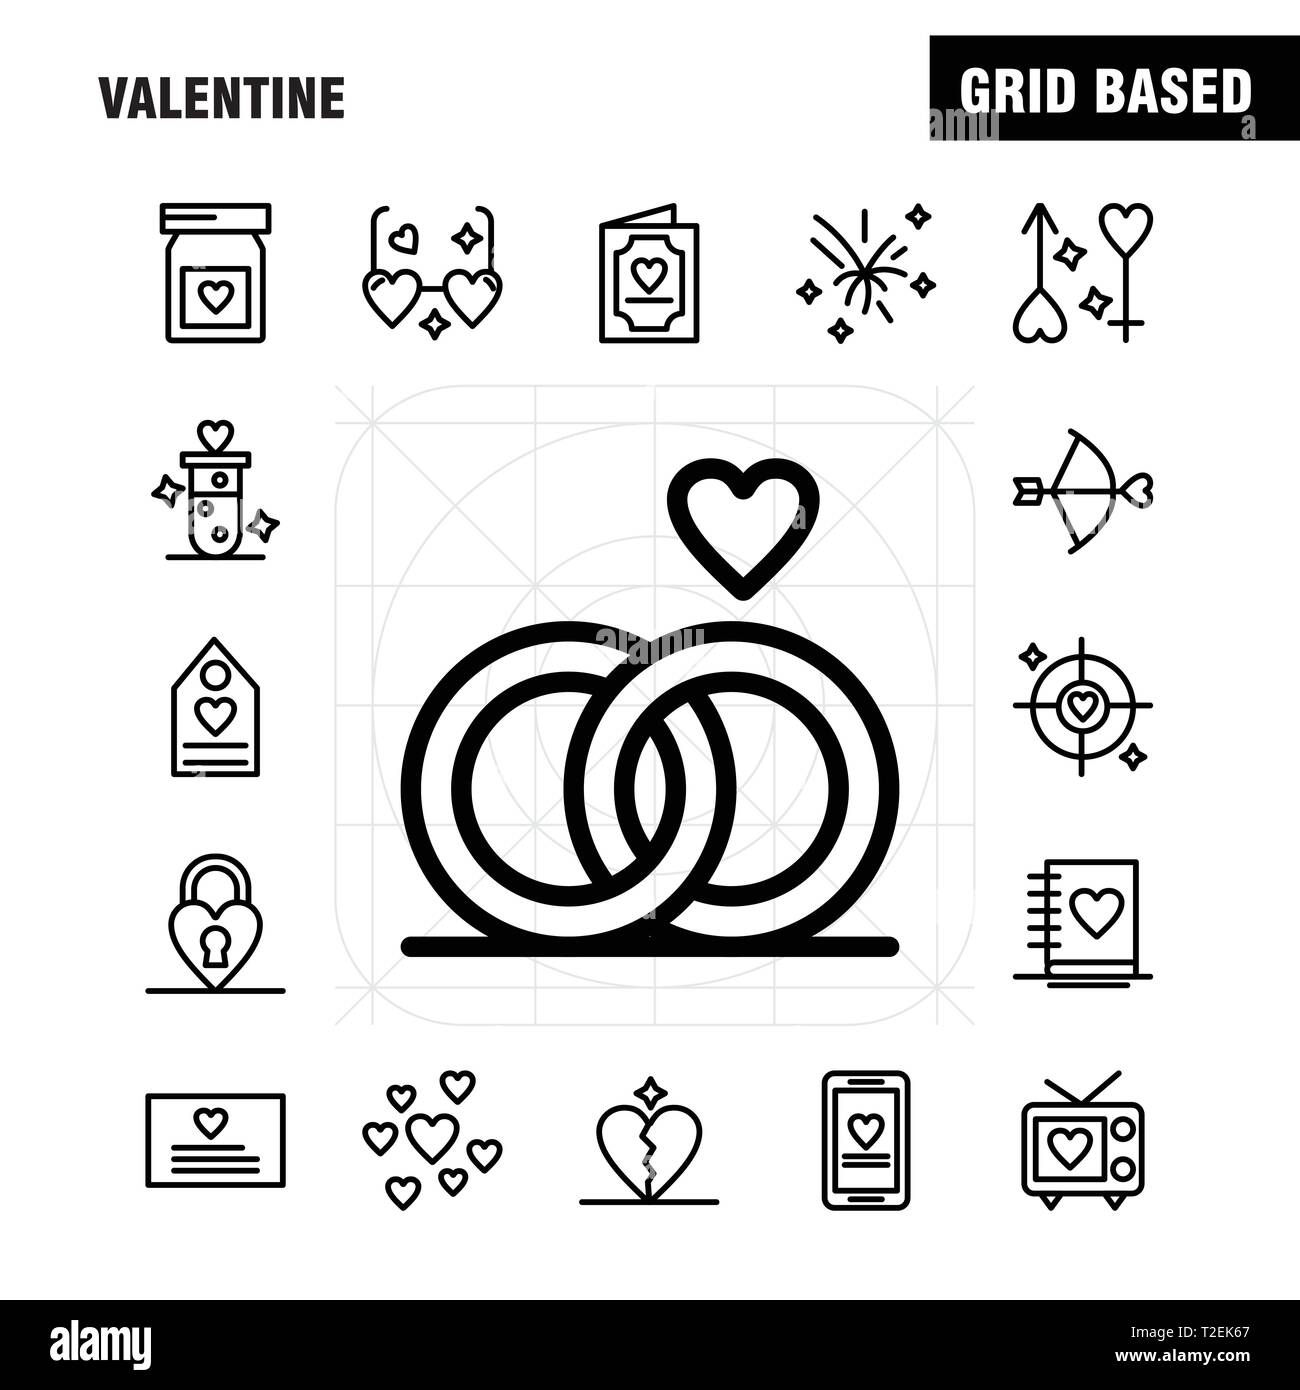 Valentine Line Icons Set For Infographics, Mobile UX/UI Kit And Print Design. Include: Bottle, Medicine, Love, Valentine, Romantic, Book, Love, Valent - Stock Image